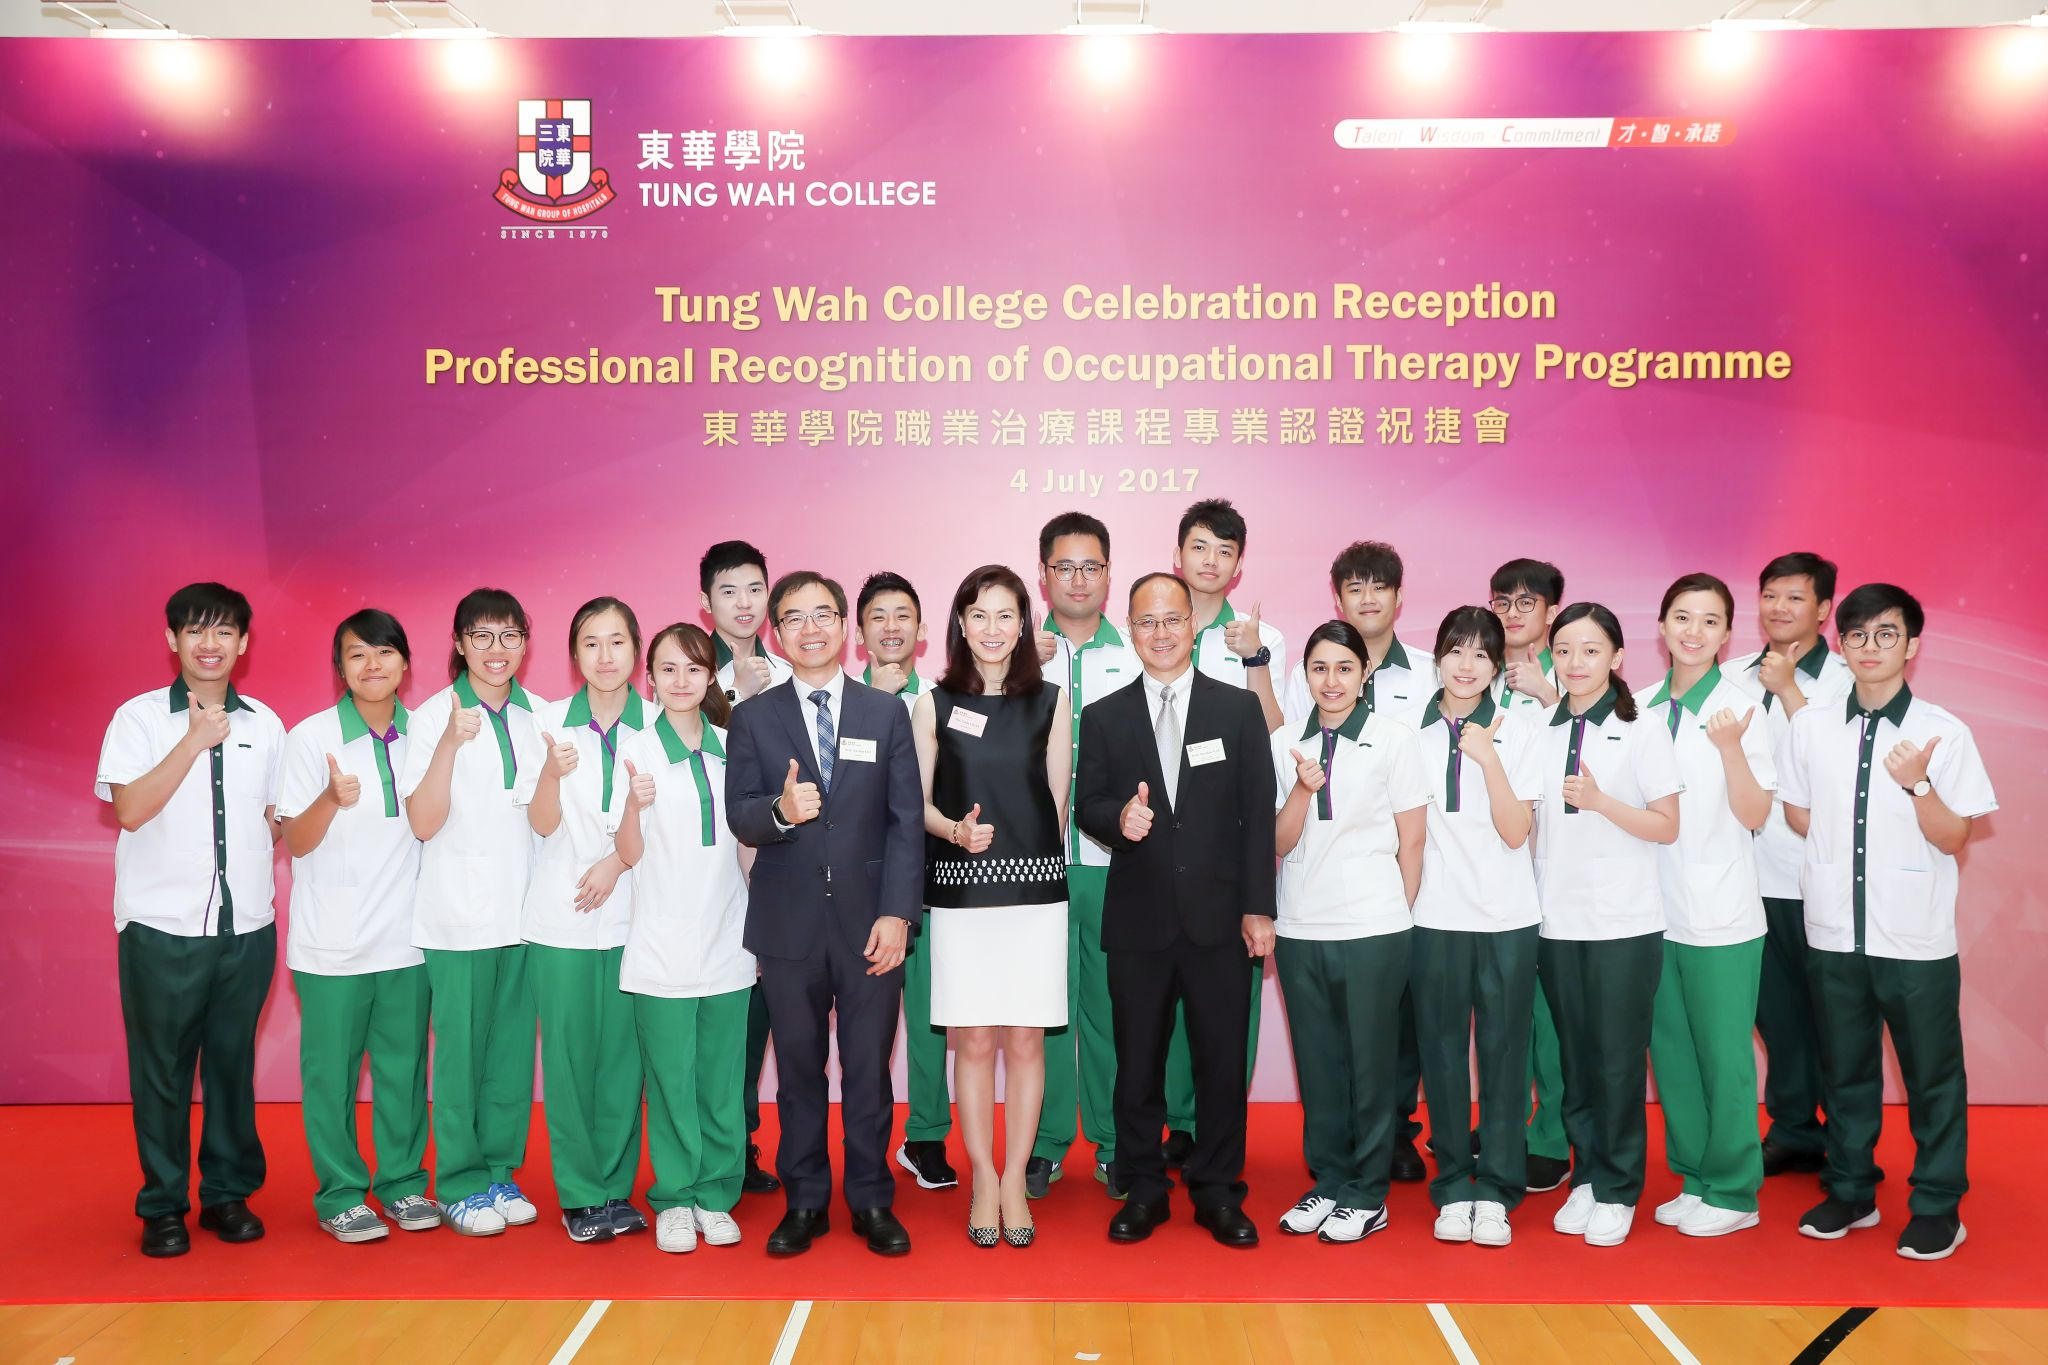 Celebration Reception for Professional Recognition of Occupational Therapy Programme